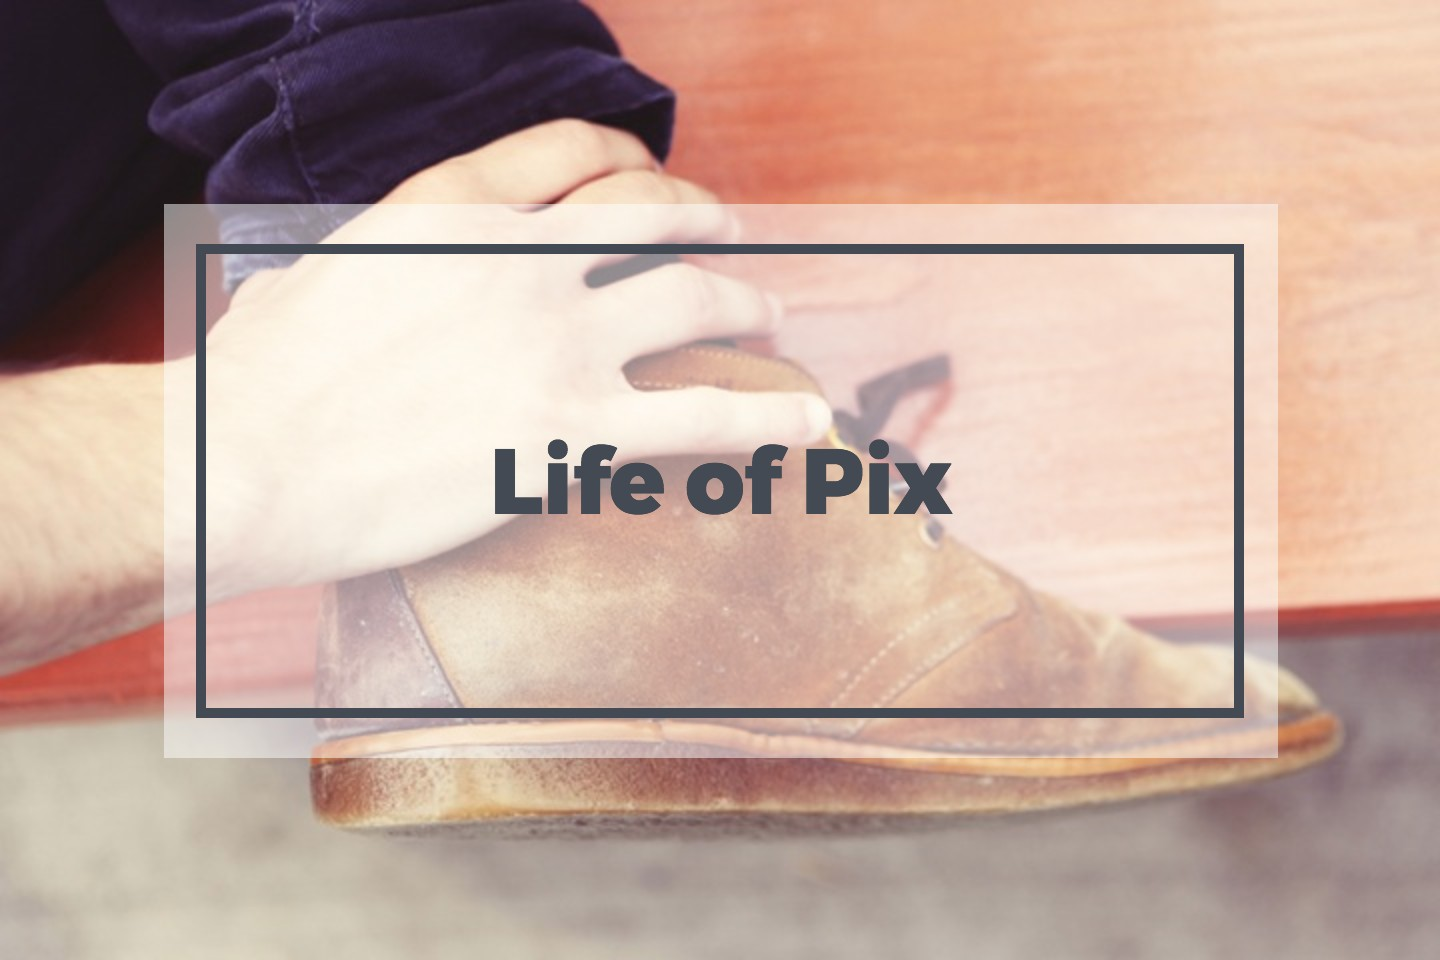 Life of Pix free stock photos